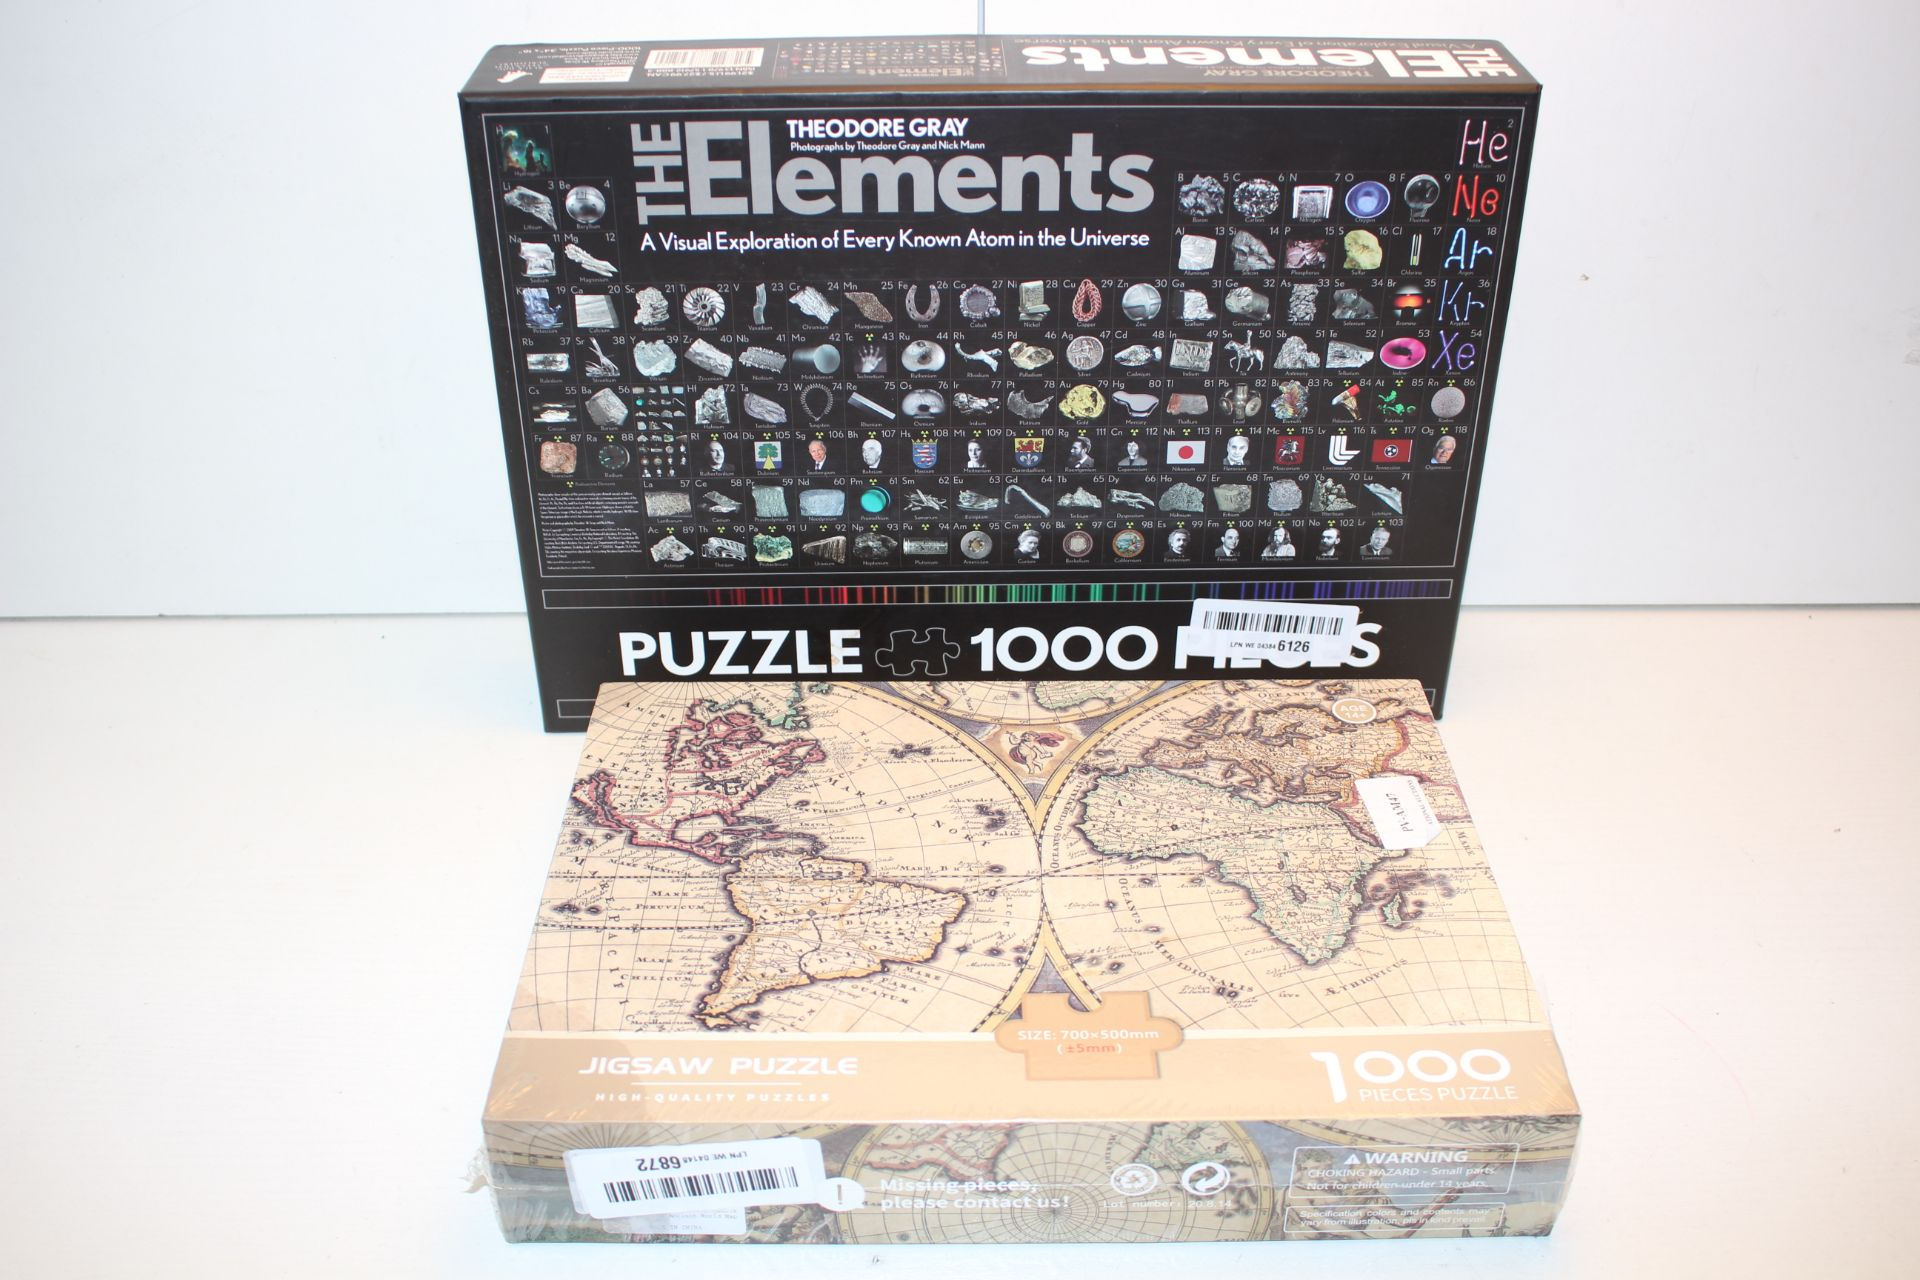 2X BOXED ASSORTED PUZZLES TO INCLUDE THE ELEMENTS & GLOBECondition ReportAppraisal Available on